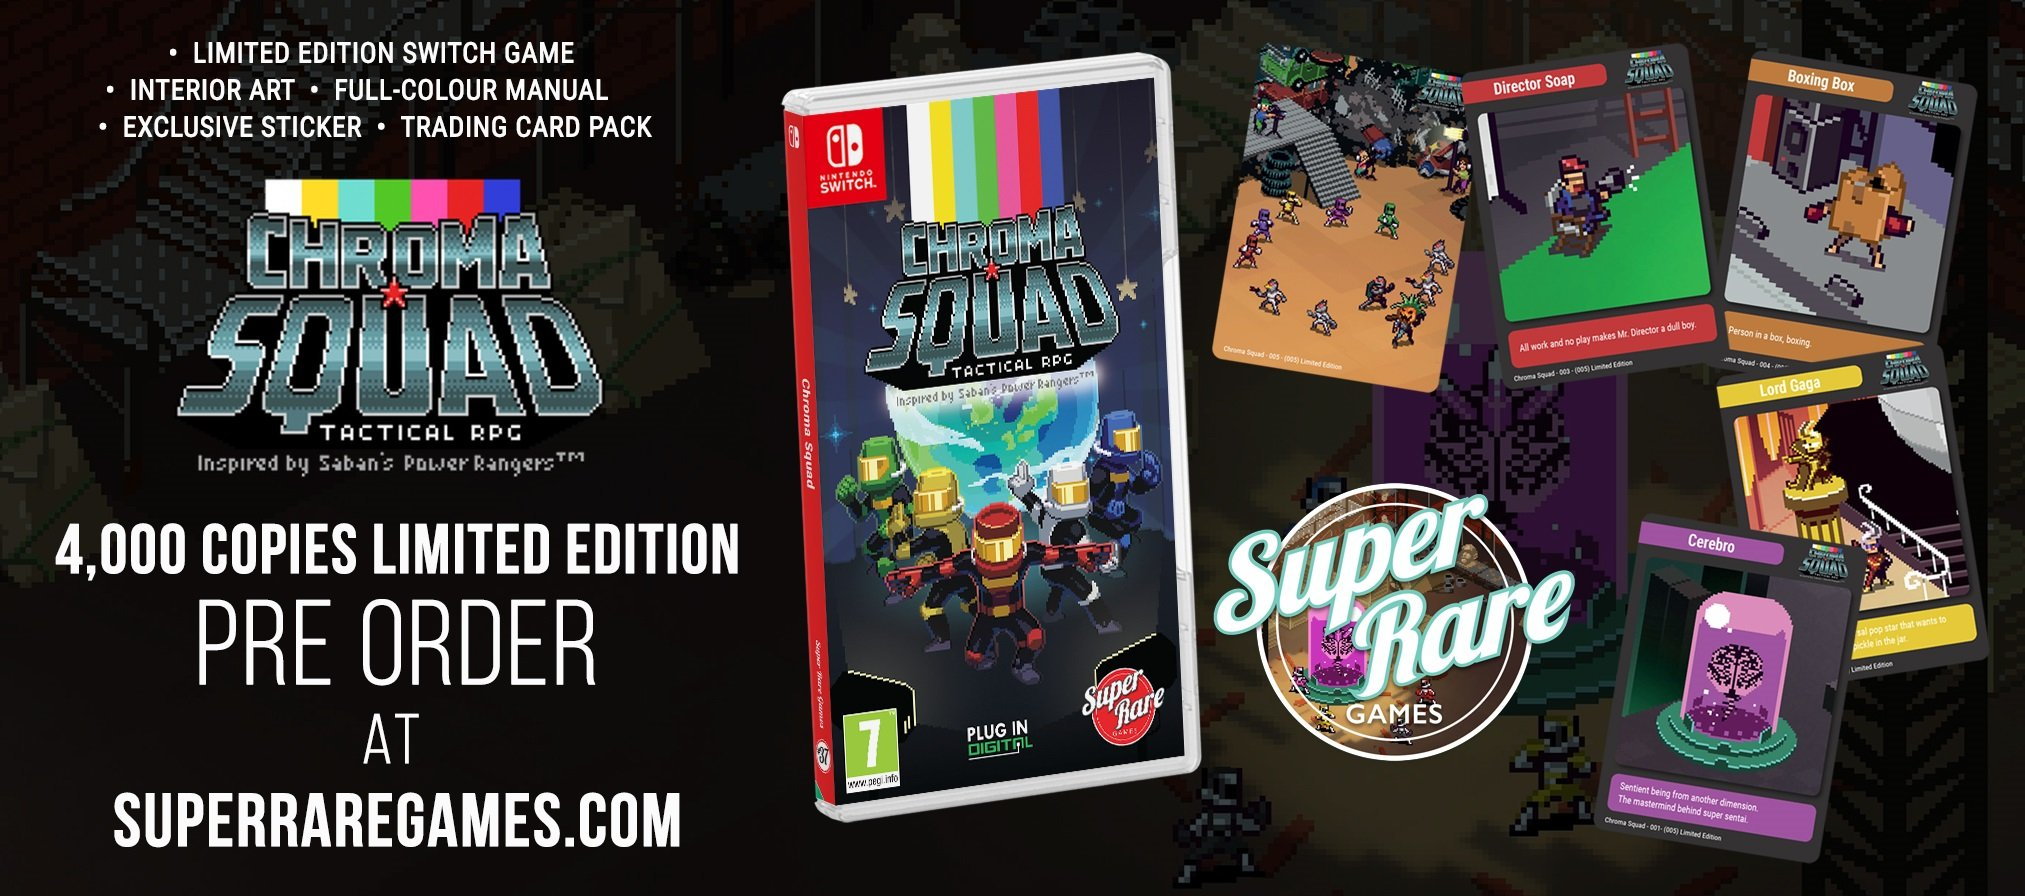 Chroma Squad Super Rare Games contest out now win